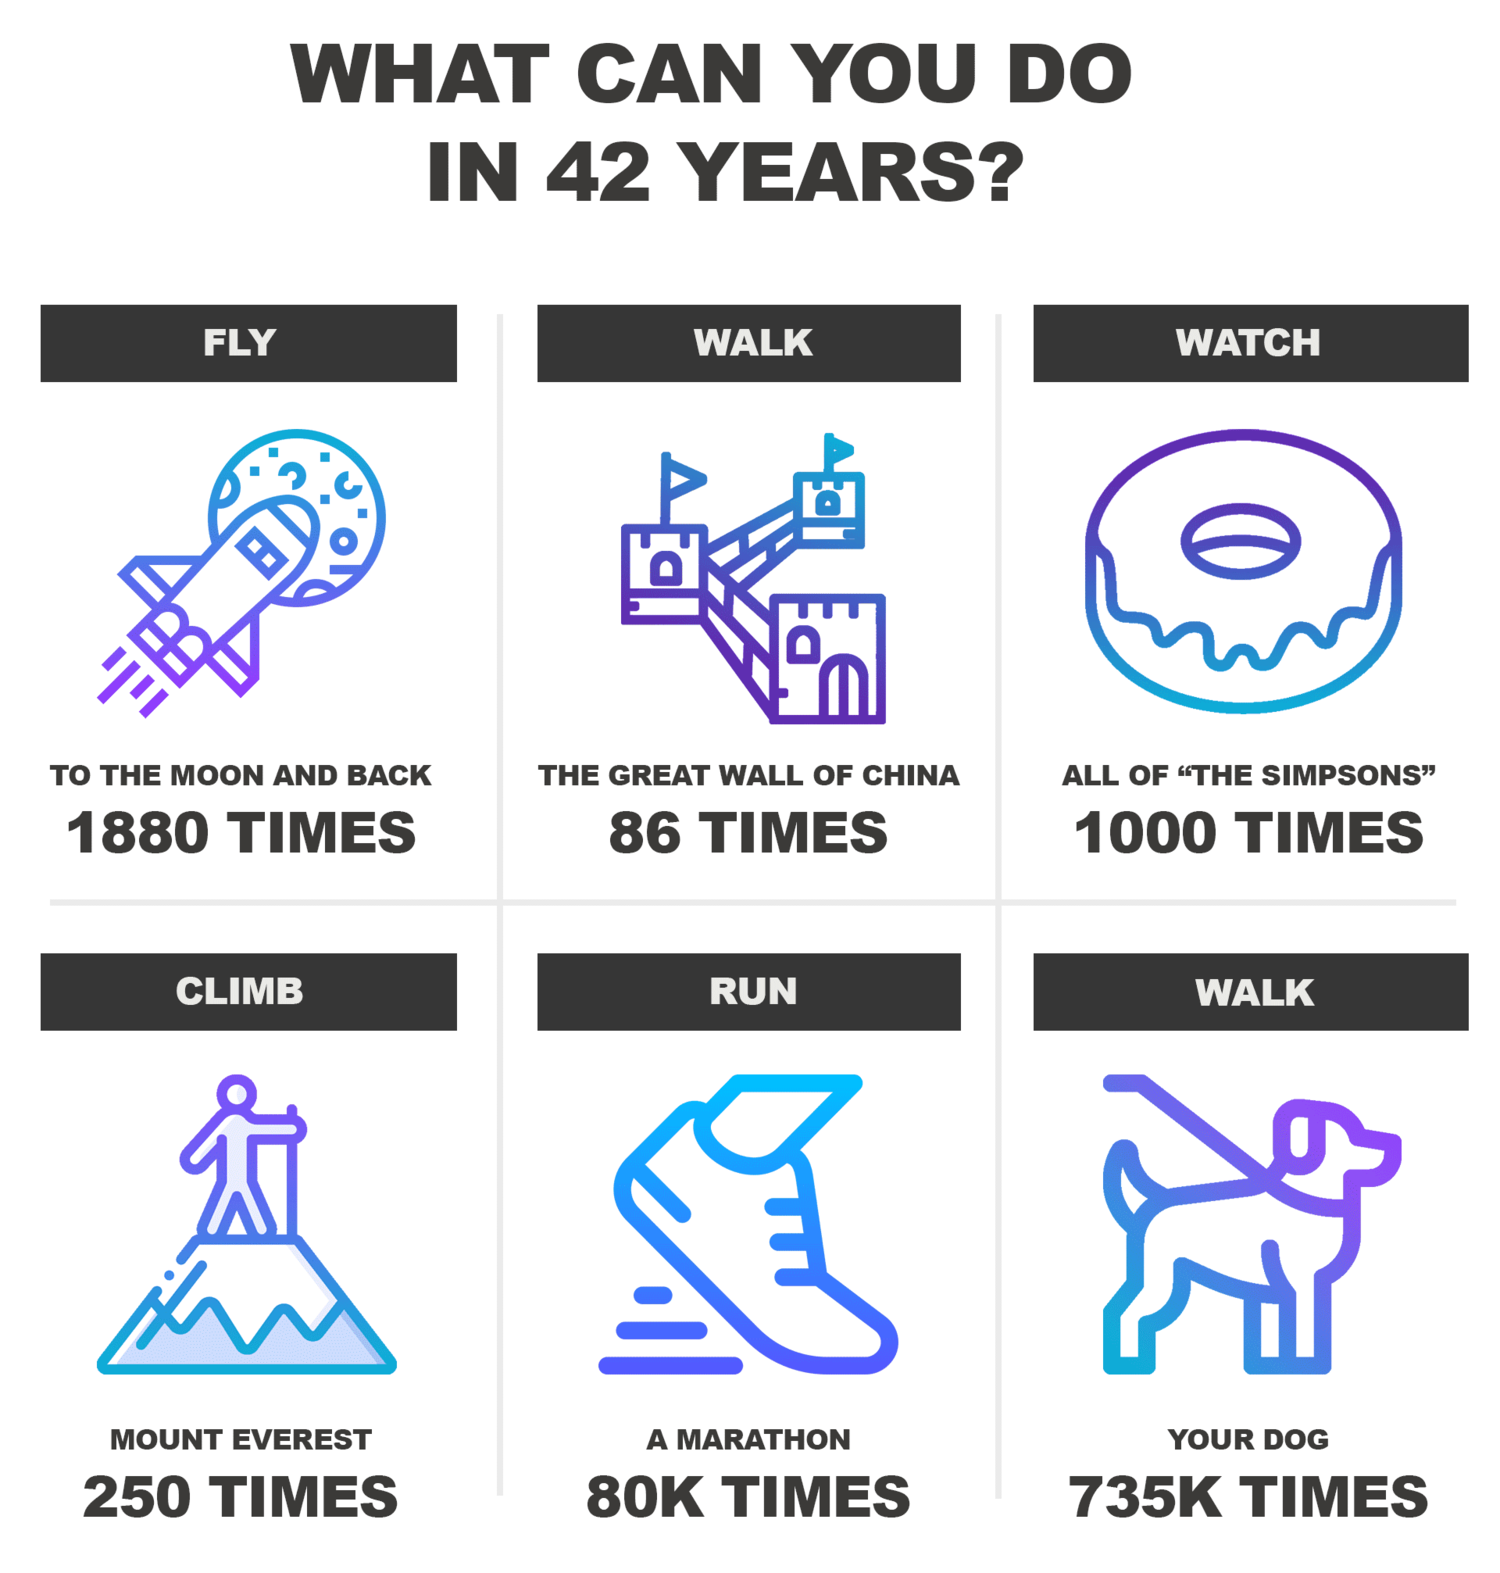 Some alternative things you can do with your life if you stop looking at your displays. Adapted from an infographic originated by Social Media Today. [21]  Icons made by Eucalyp, Icongeek26, Freepik and Smashicons from www.flaticon.com